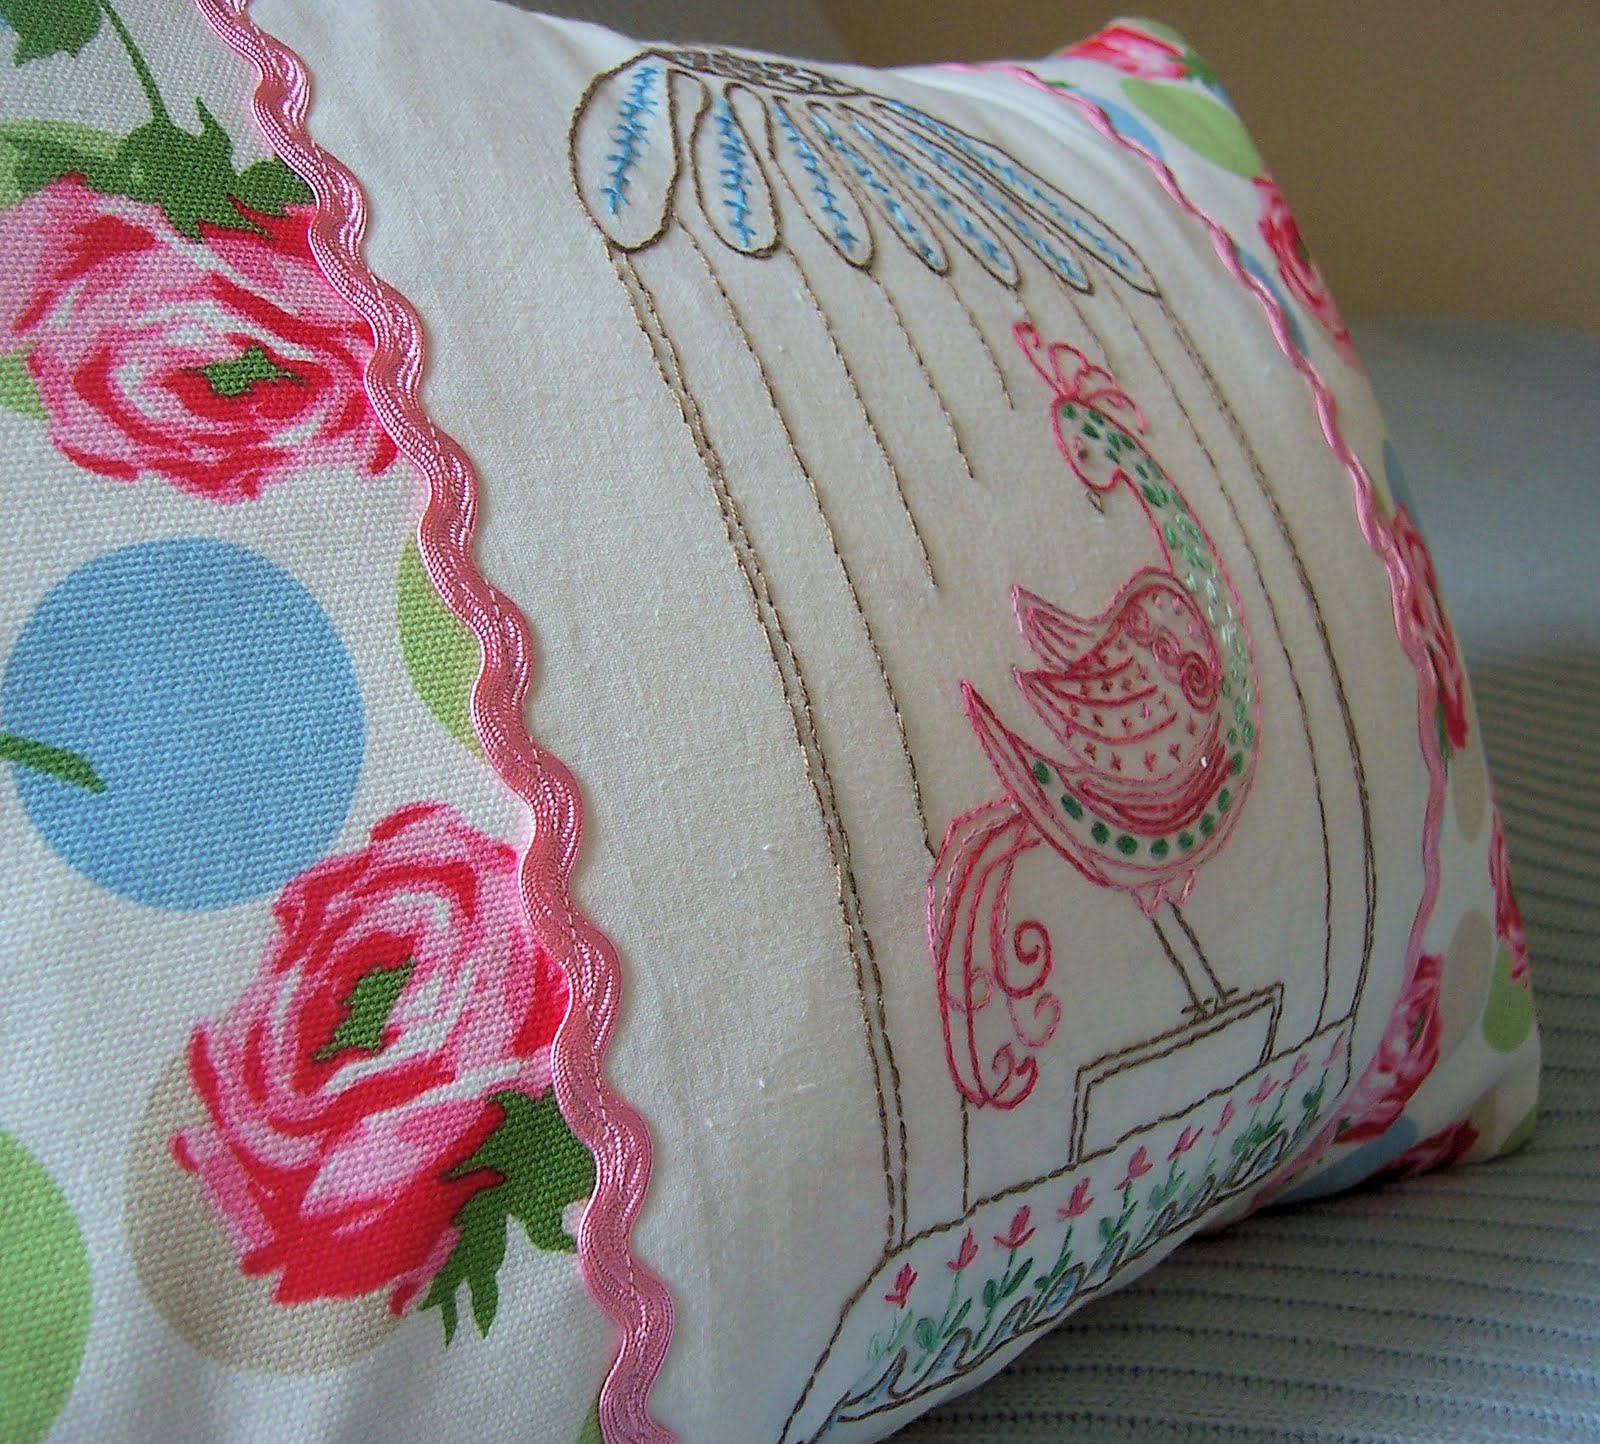 Groovy Bird Embroidered Pillow Tutorial